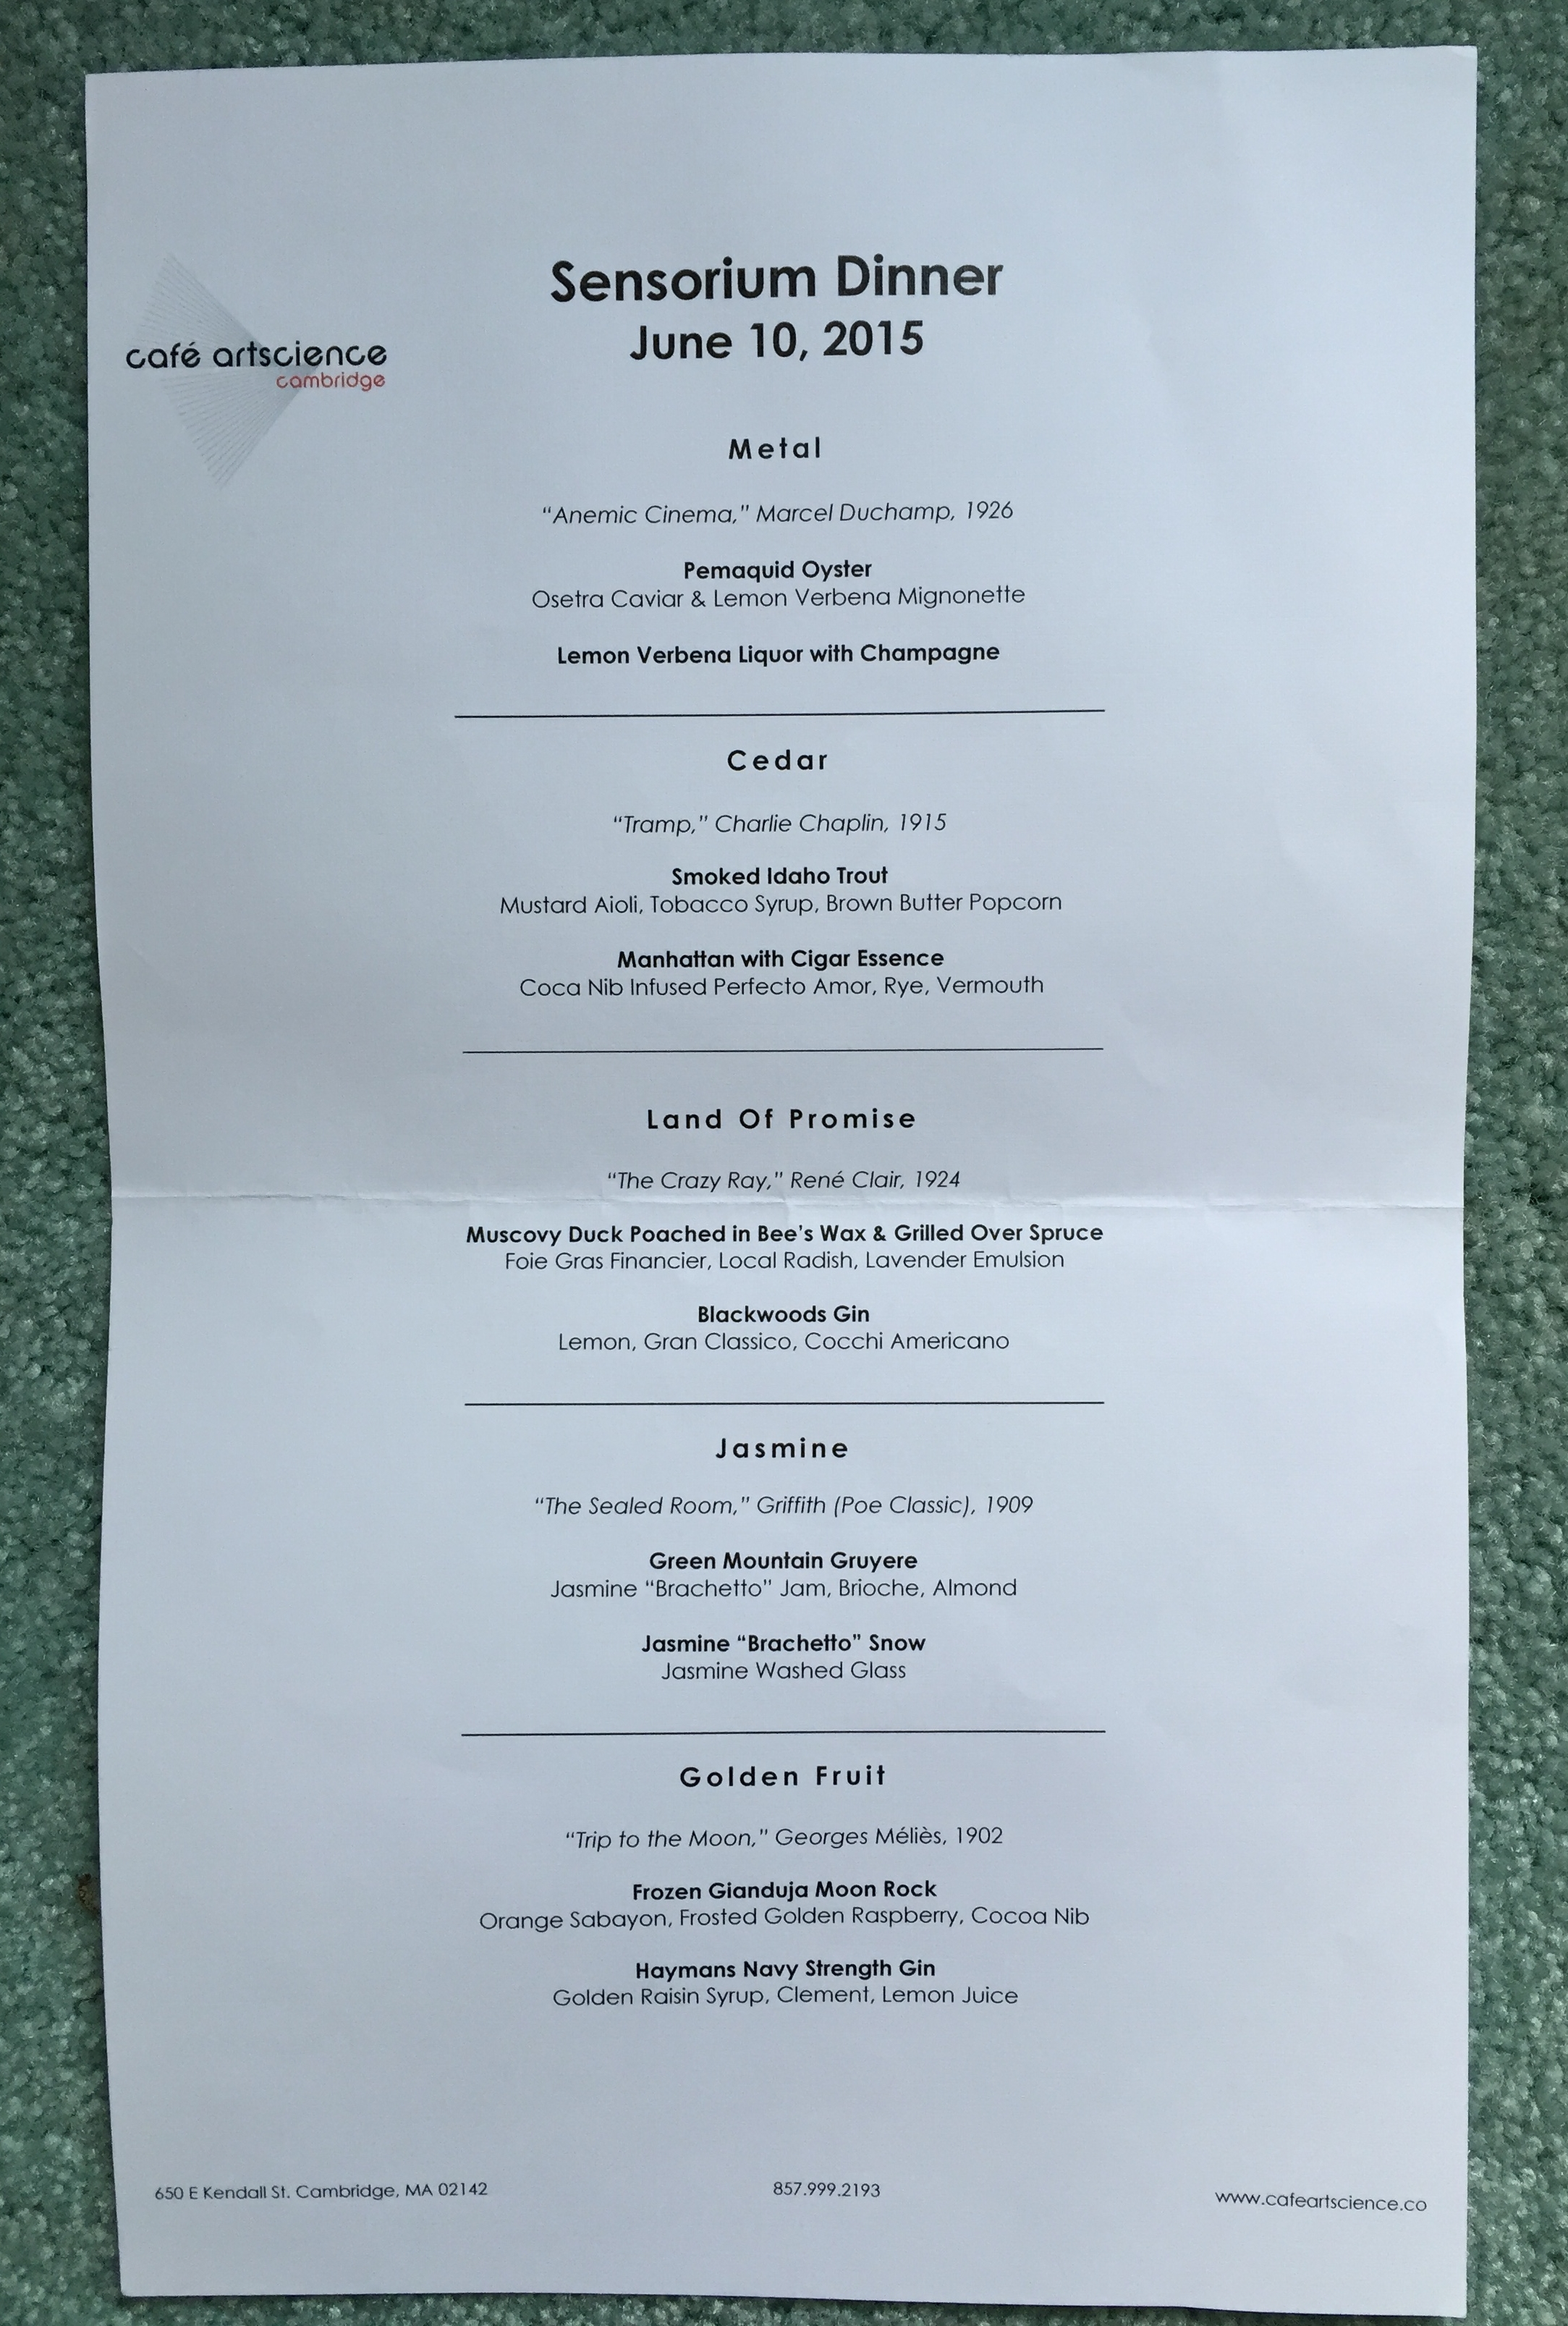 The menu of sensations at the Sensorium Dinner, June 10, 2015.